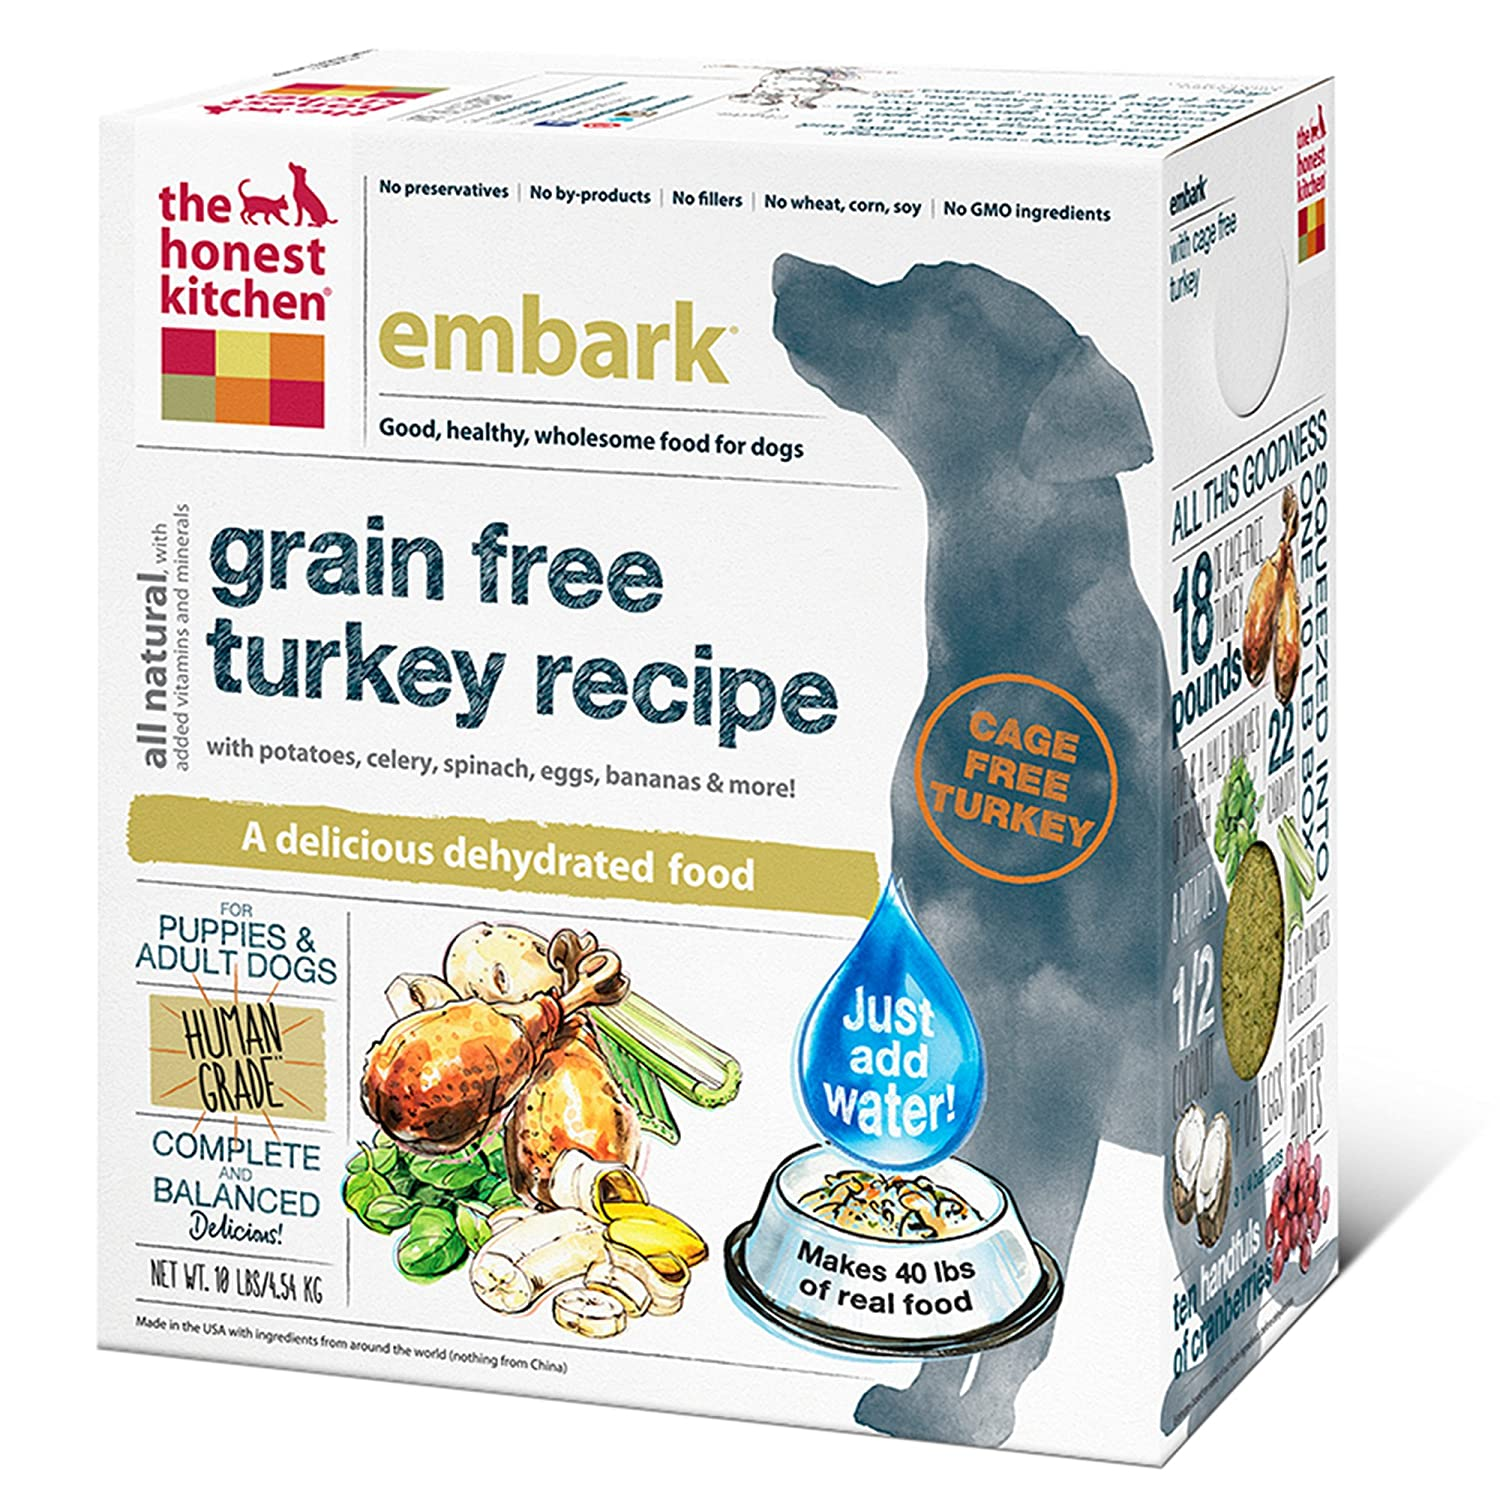 attractive The Honest Kitchen Dog Food Recall #3: Amazon.com: The Honest Kitchen Embark: Natural Human Grade Dehydrated Dog Food, Grain Free Turkey, 10 lbs (Makes 40 lbs): Pet Supplies